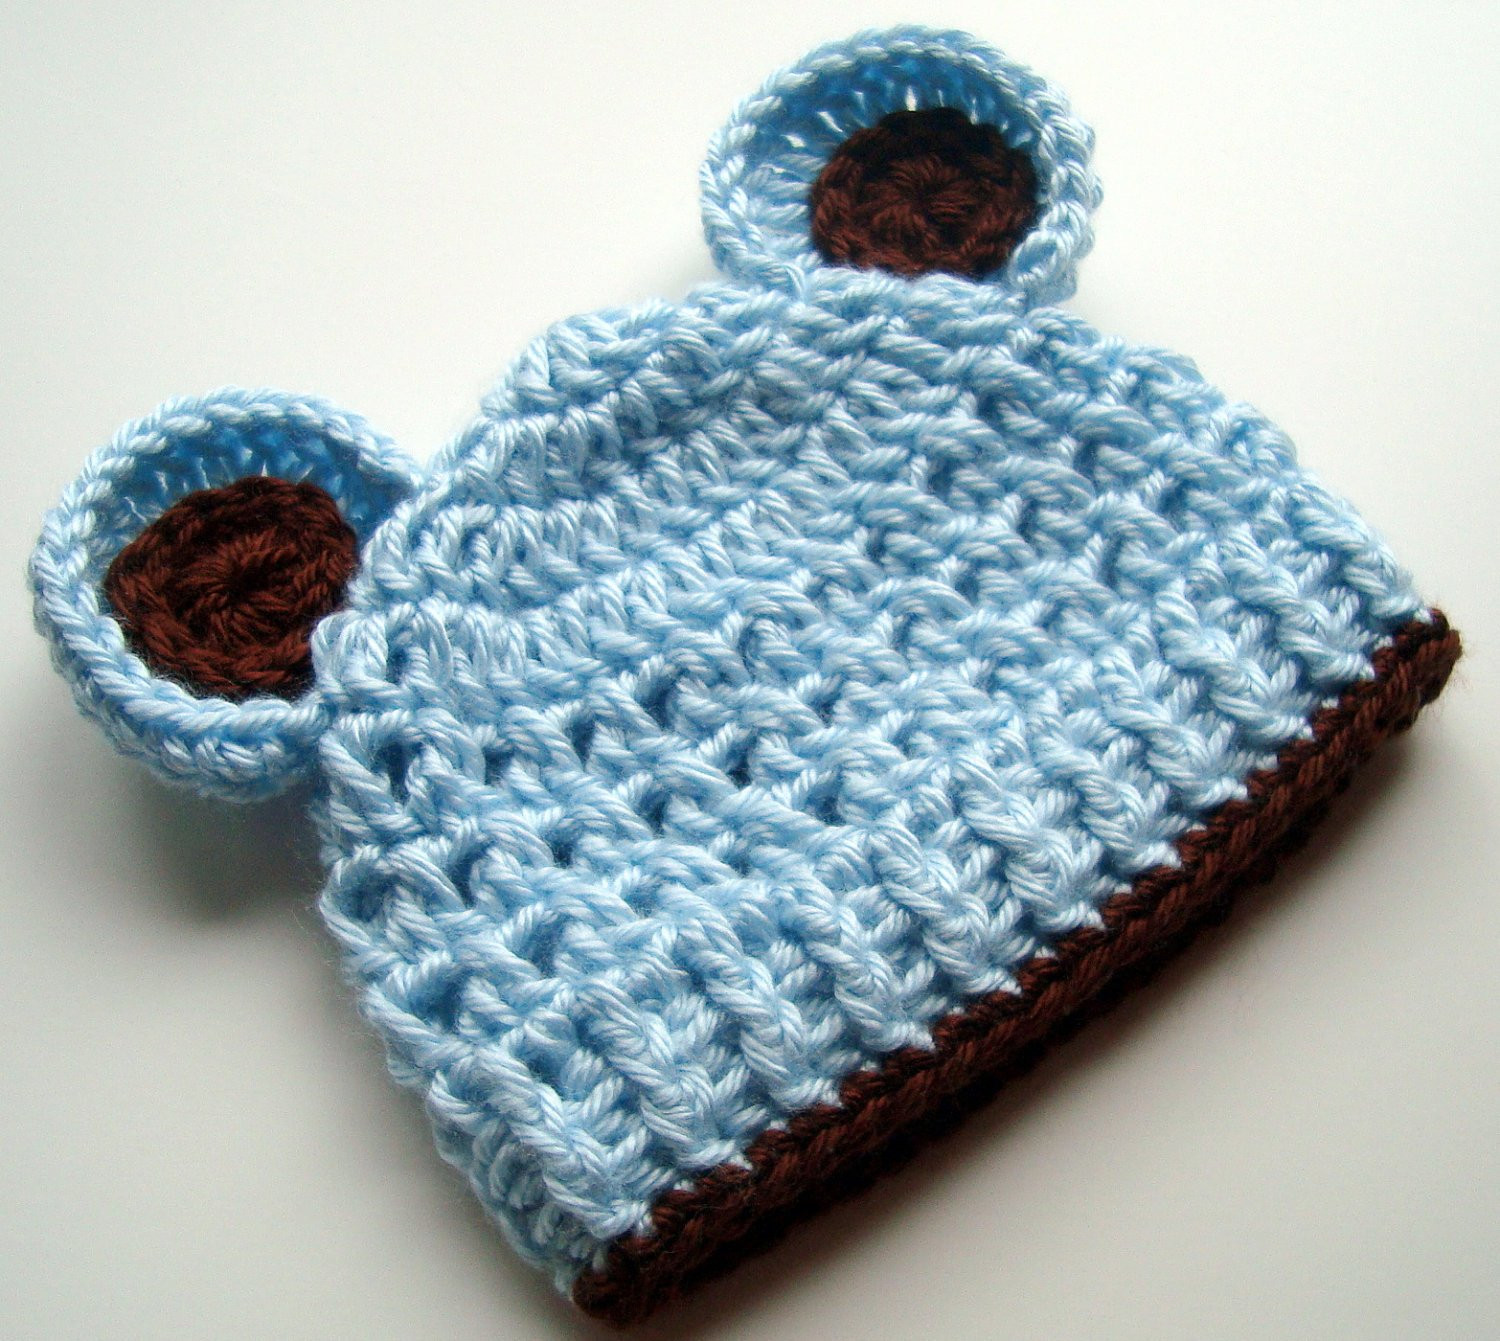 New Baby Boy Hat Crochet Baby Hat with Ears Crocheted Infant Crochet Baby Boy Hats Of New 50 Ideas Crochet Baby Boy Hats